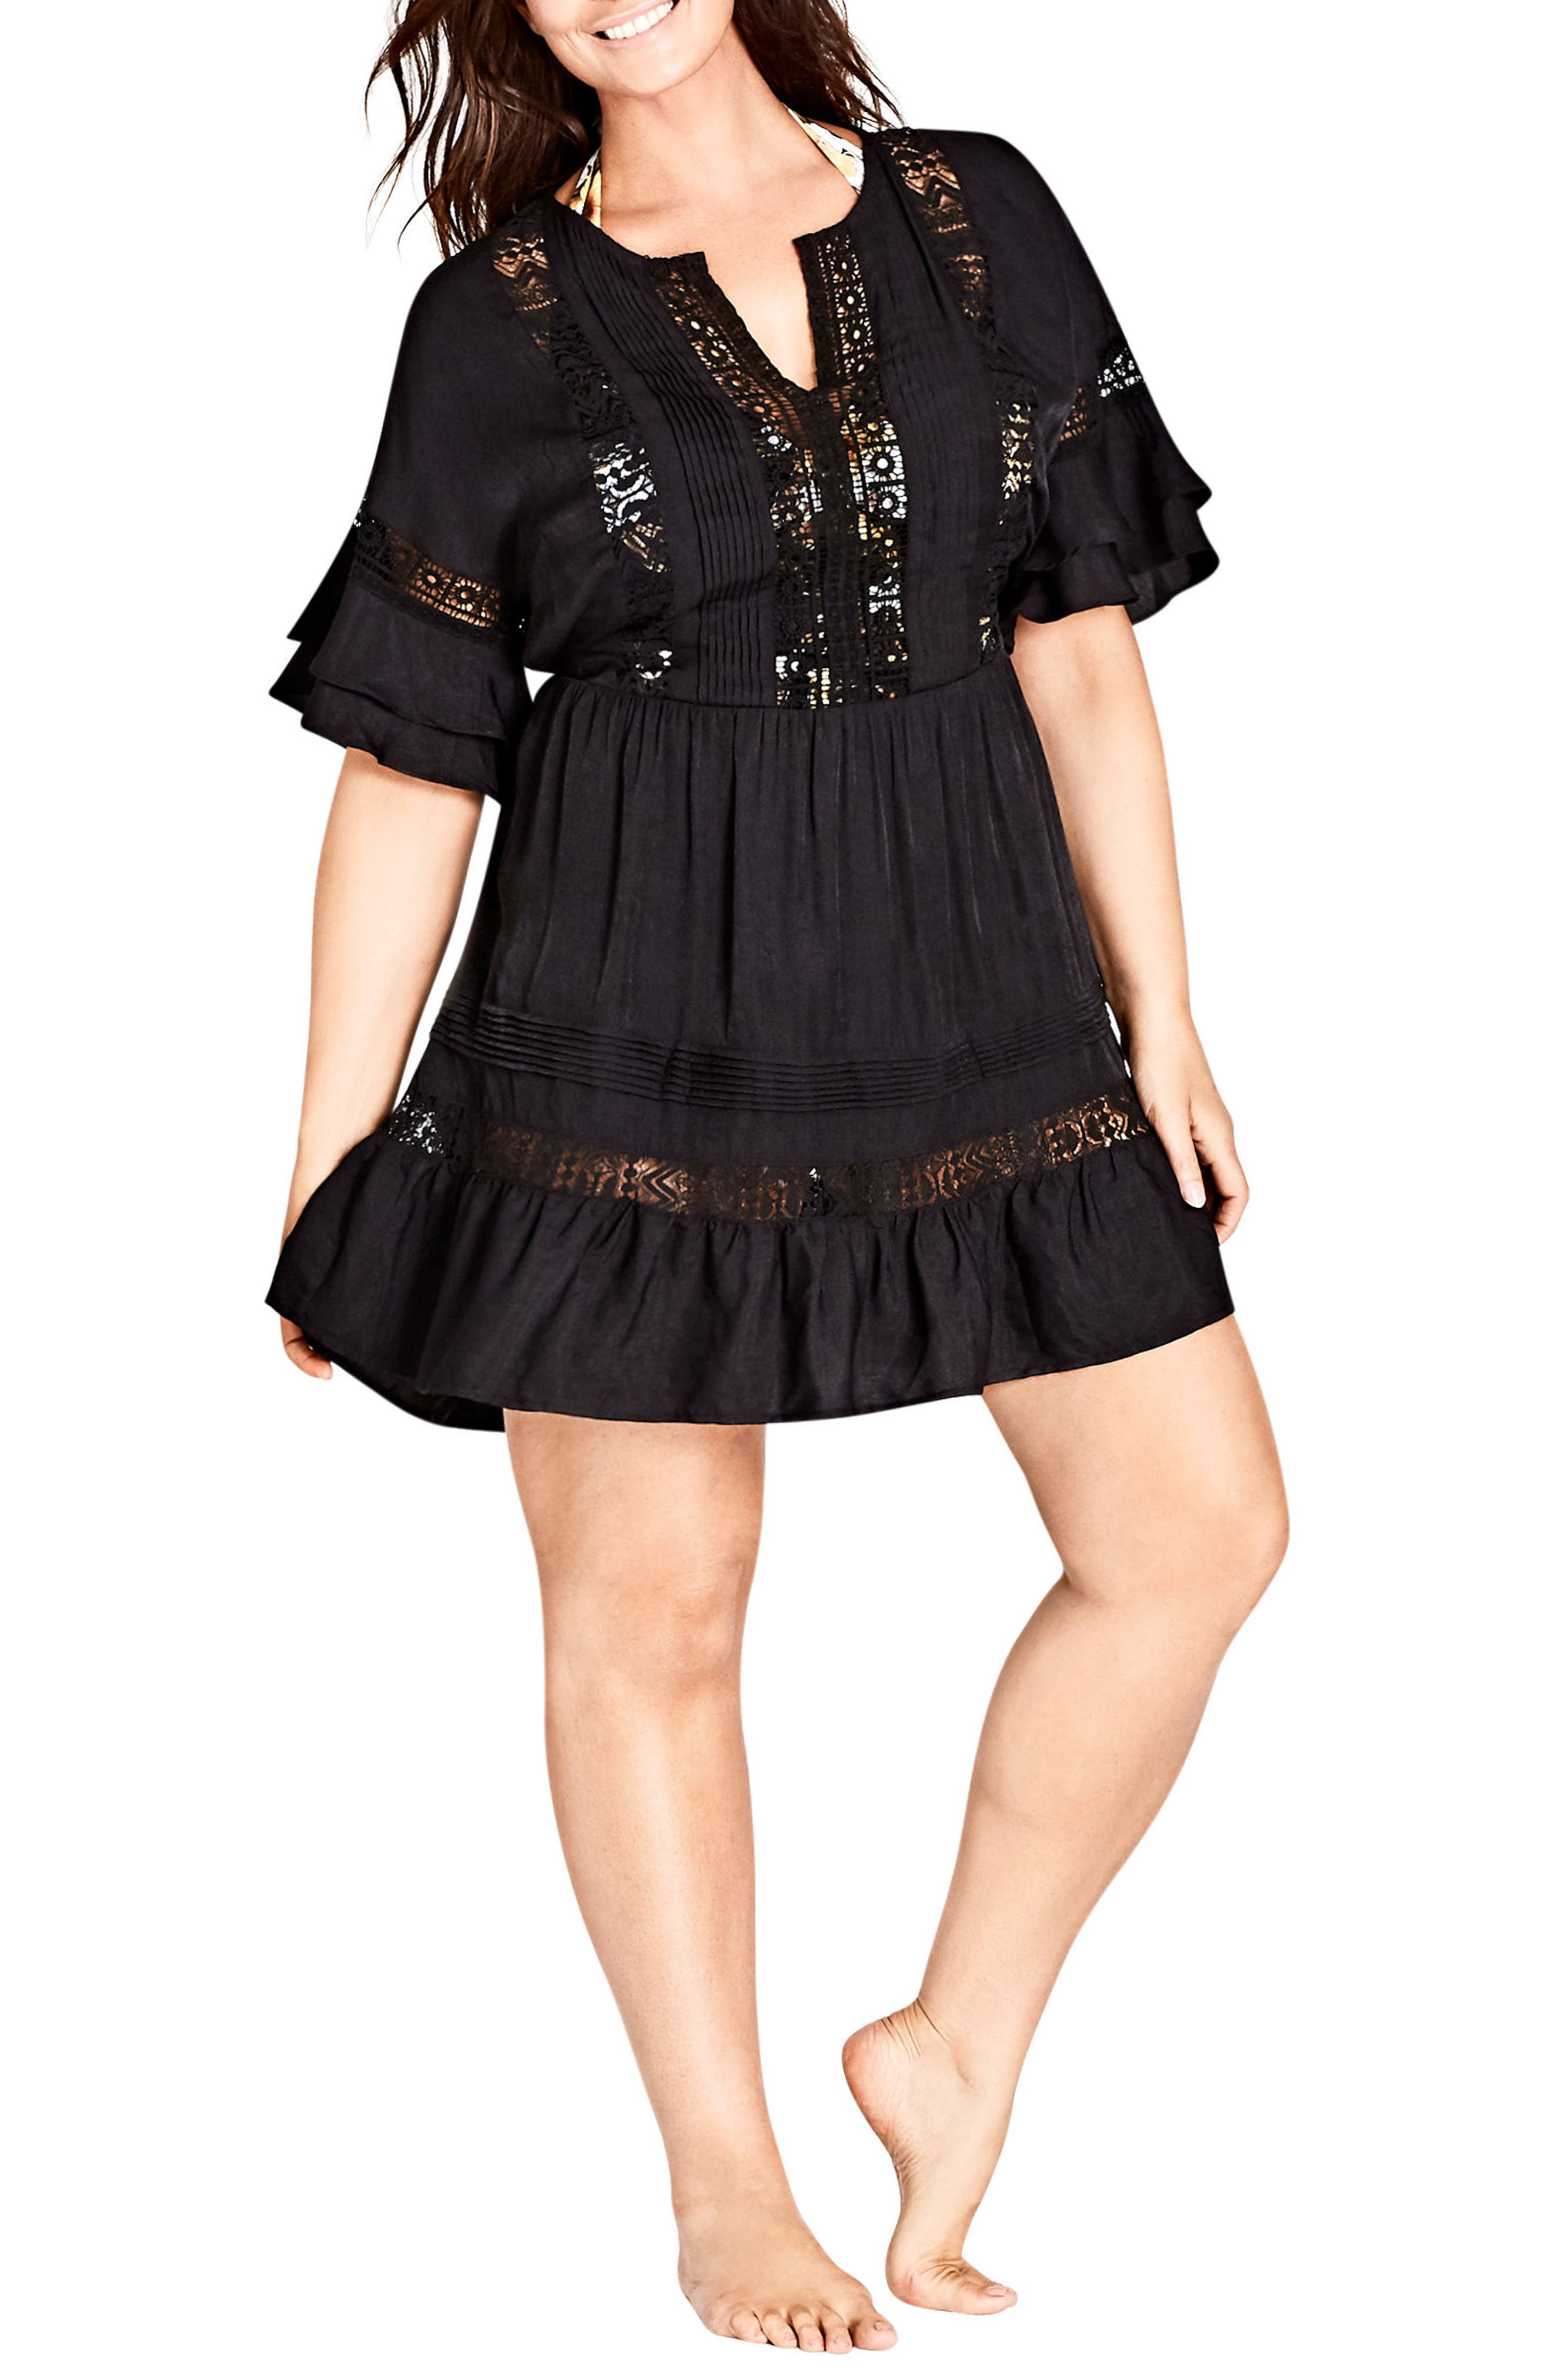 Evie Lace Trim Cover-Up Dress,                             Main thumbnail 1, color,                             Black